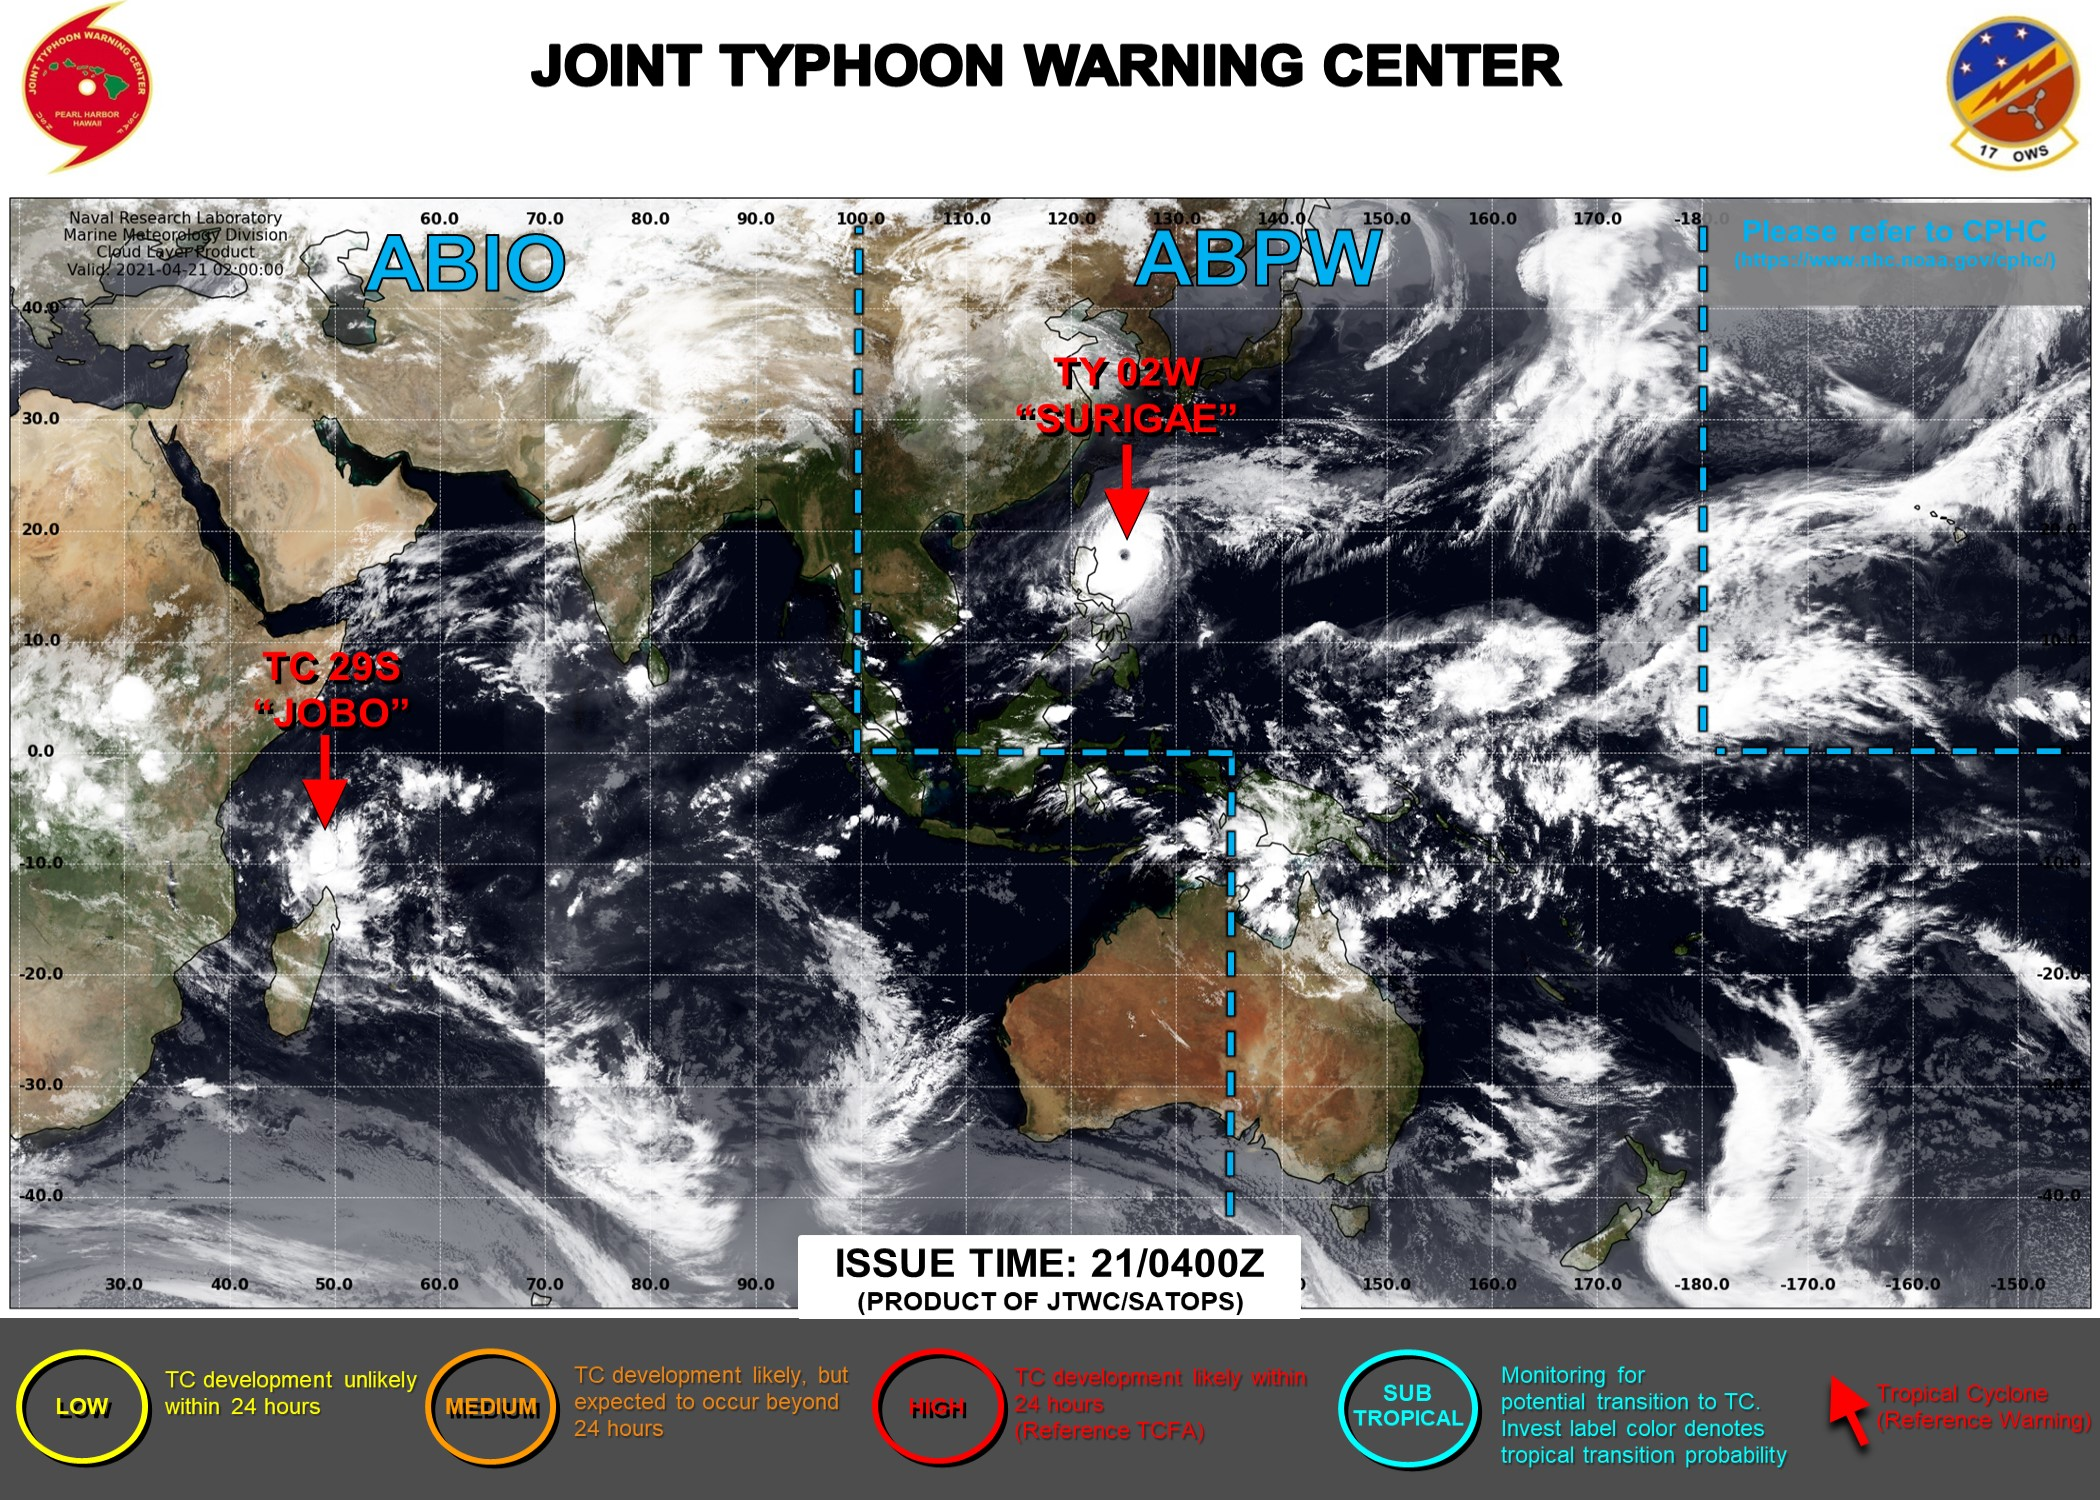 21/04UTC. THE JTWC IS ISSUING 6HOURLY WARNINGS ON 02W(SURIGAE AND 12HOURLY WARNINGS ON 29S(JOBO). 3HOURLY SATELLITE BULLETINS ARE ISSUED FOR BOTH SYSTEMS.